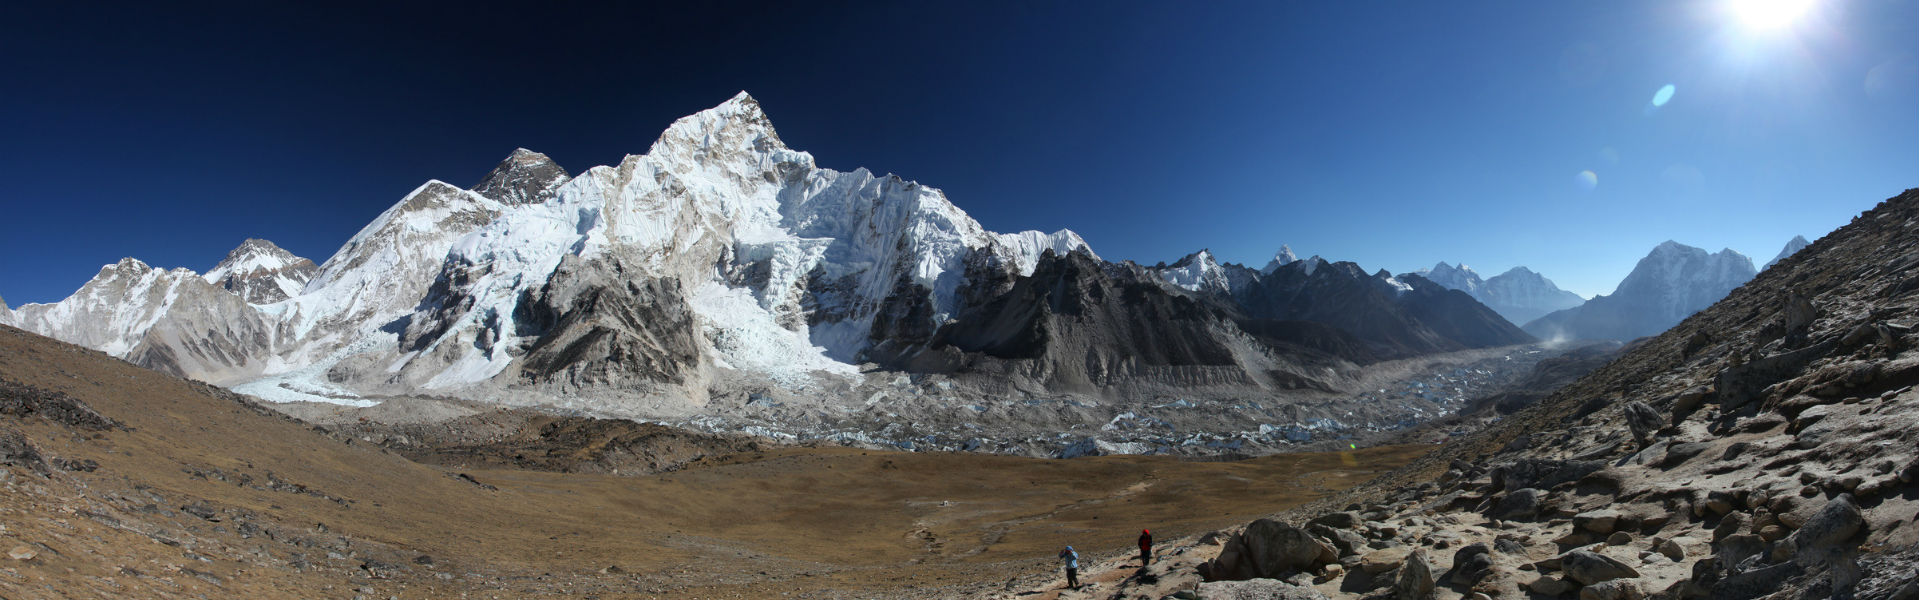 How to choose a trek in Nepal: Everest Base Camp Trek with panoramic view of Everest, Lhotse and Nuptse from Kala Patthar